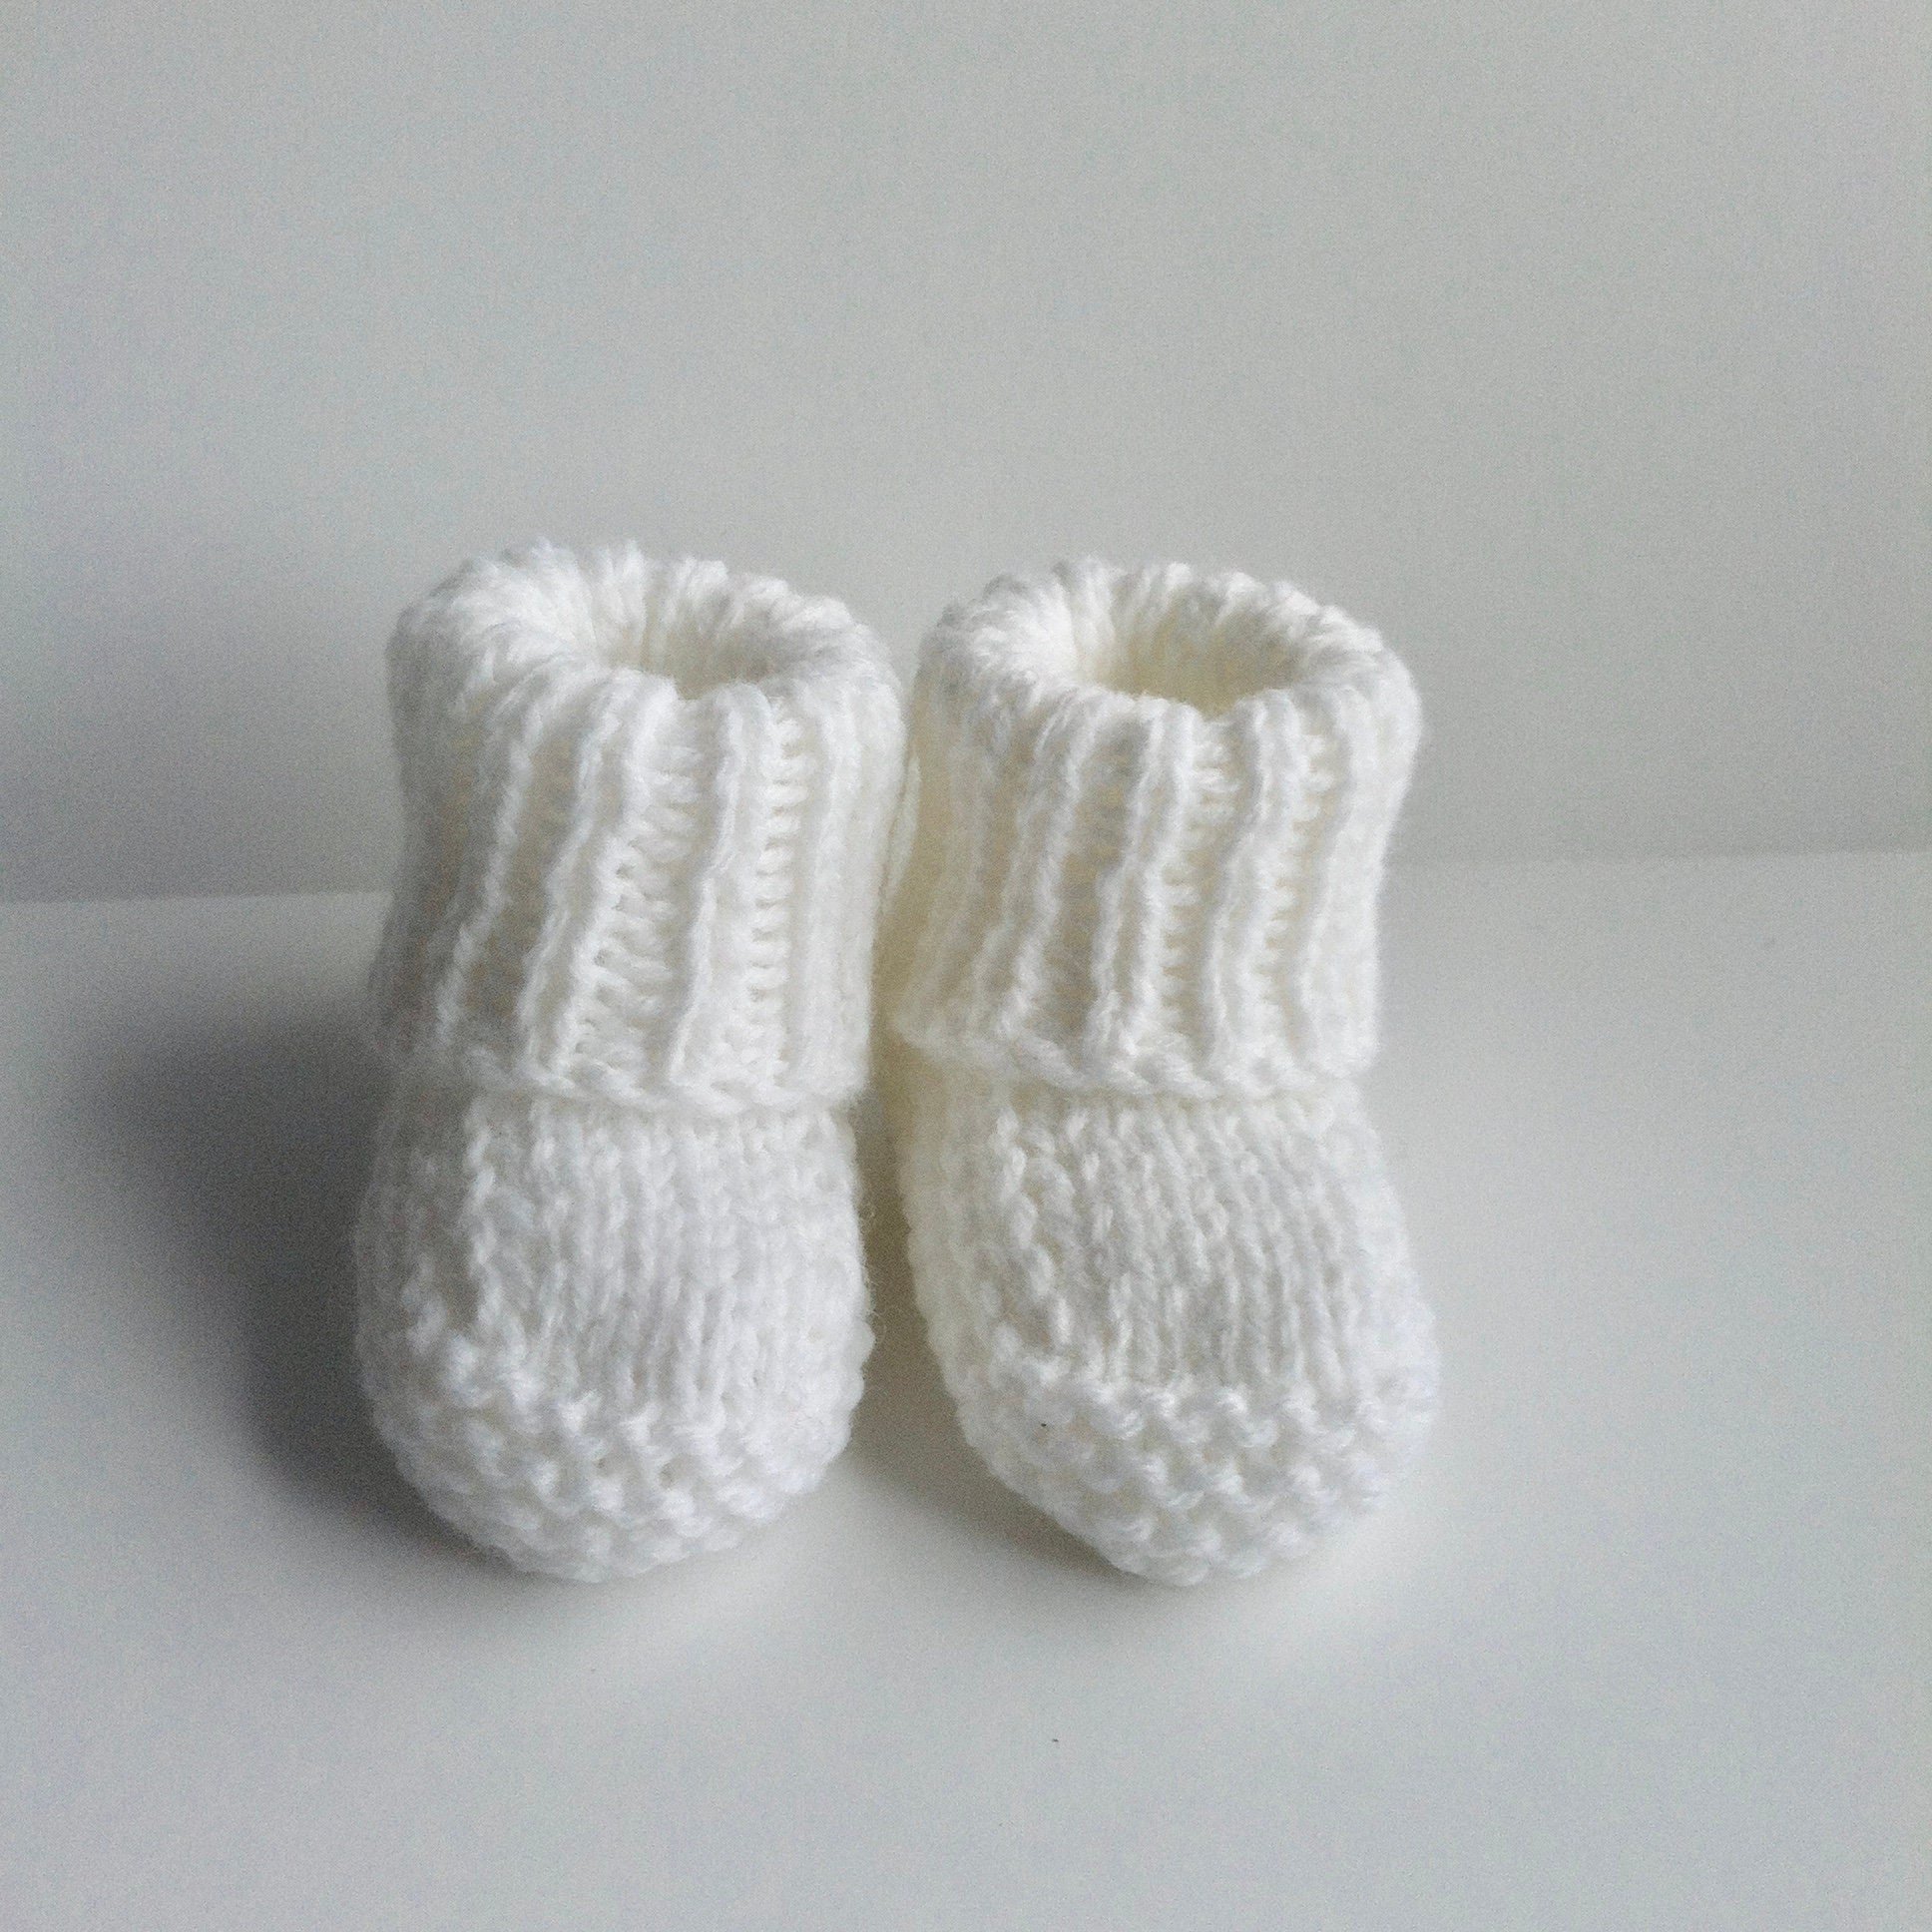 Christening shoes christening shoes boy White baby booties  917c26fadd66